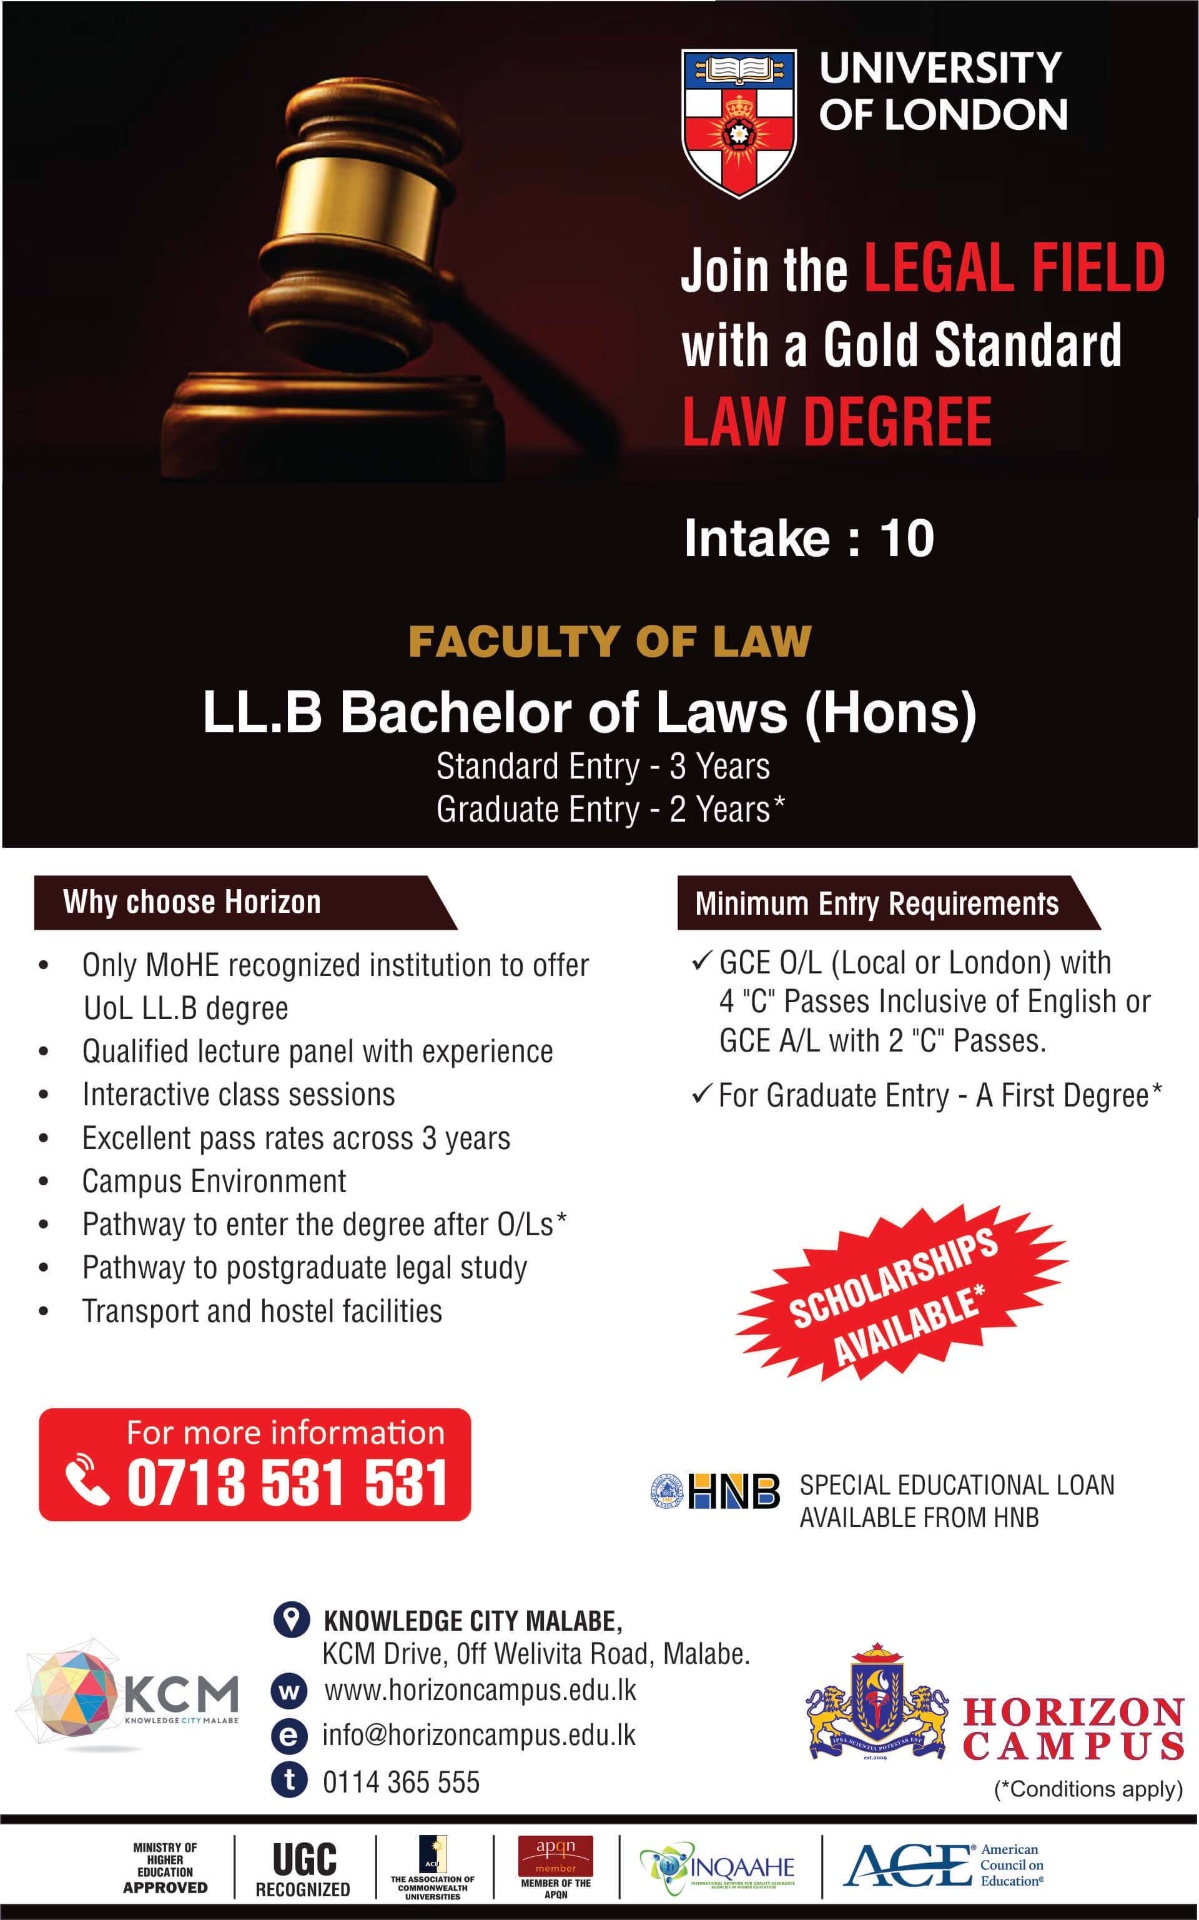 The Study University of London LLB with Horizon Campus